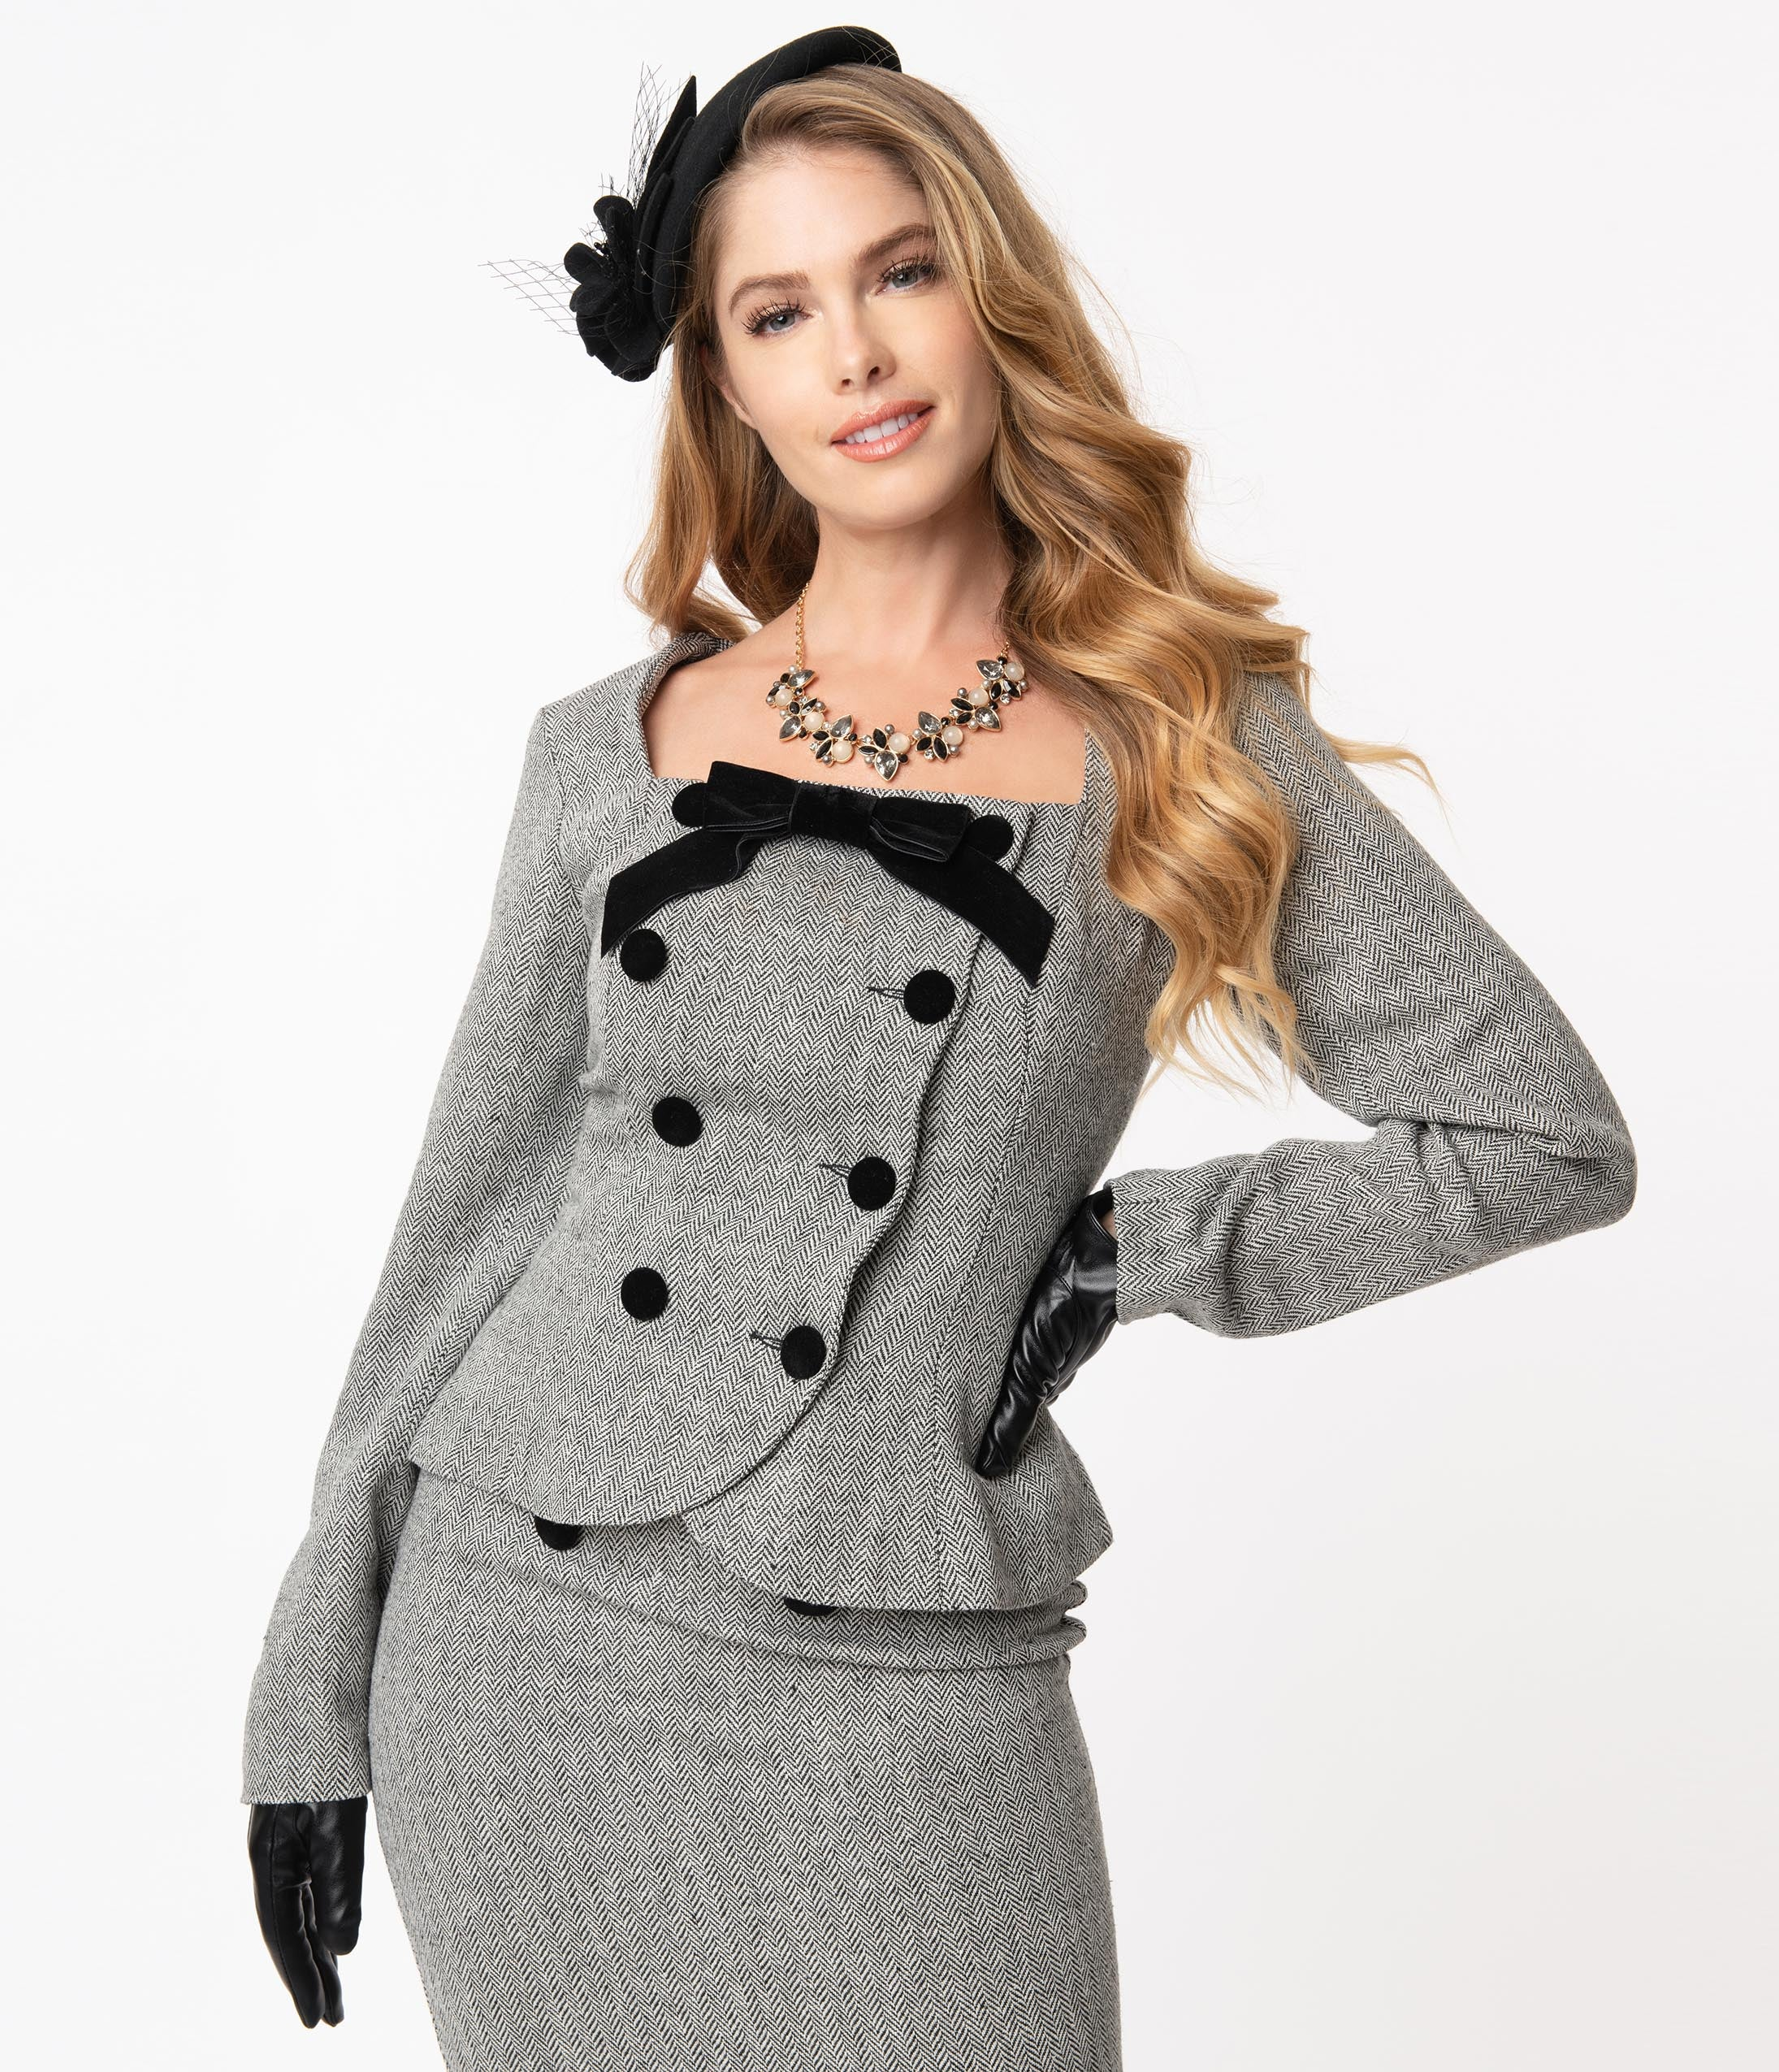 1950s Style Clothing & Fashion Collectif 1940S Grey Herringbone Agatha Suit Jacket $118.00 AT vintagedancer.com